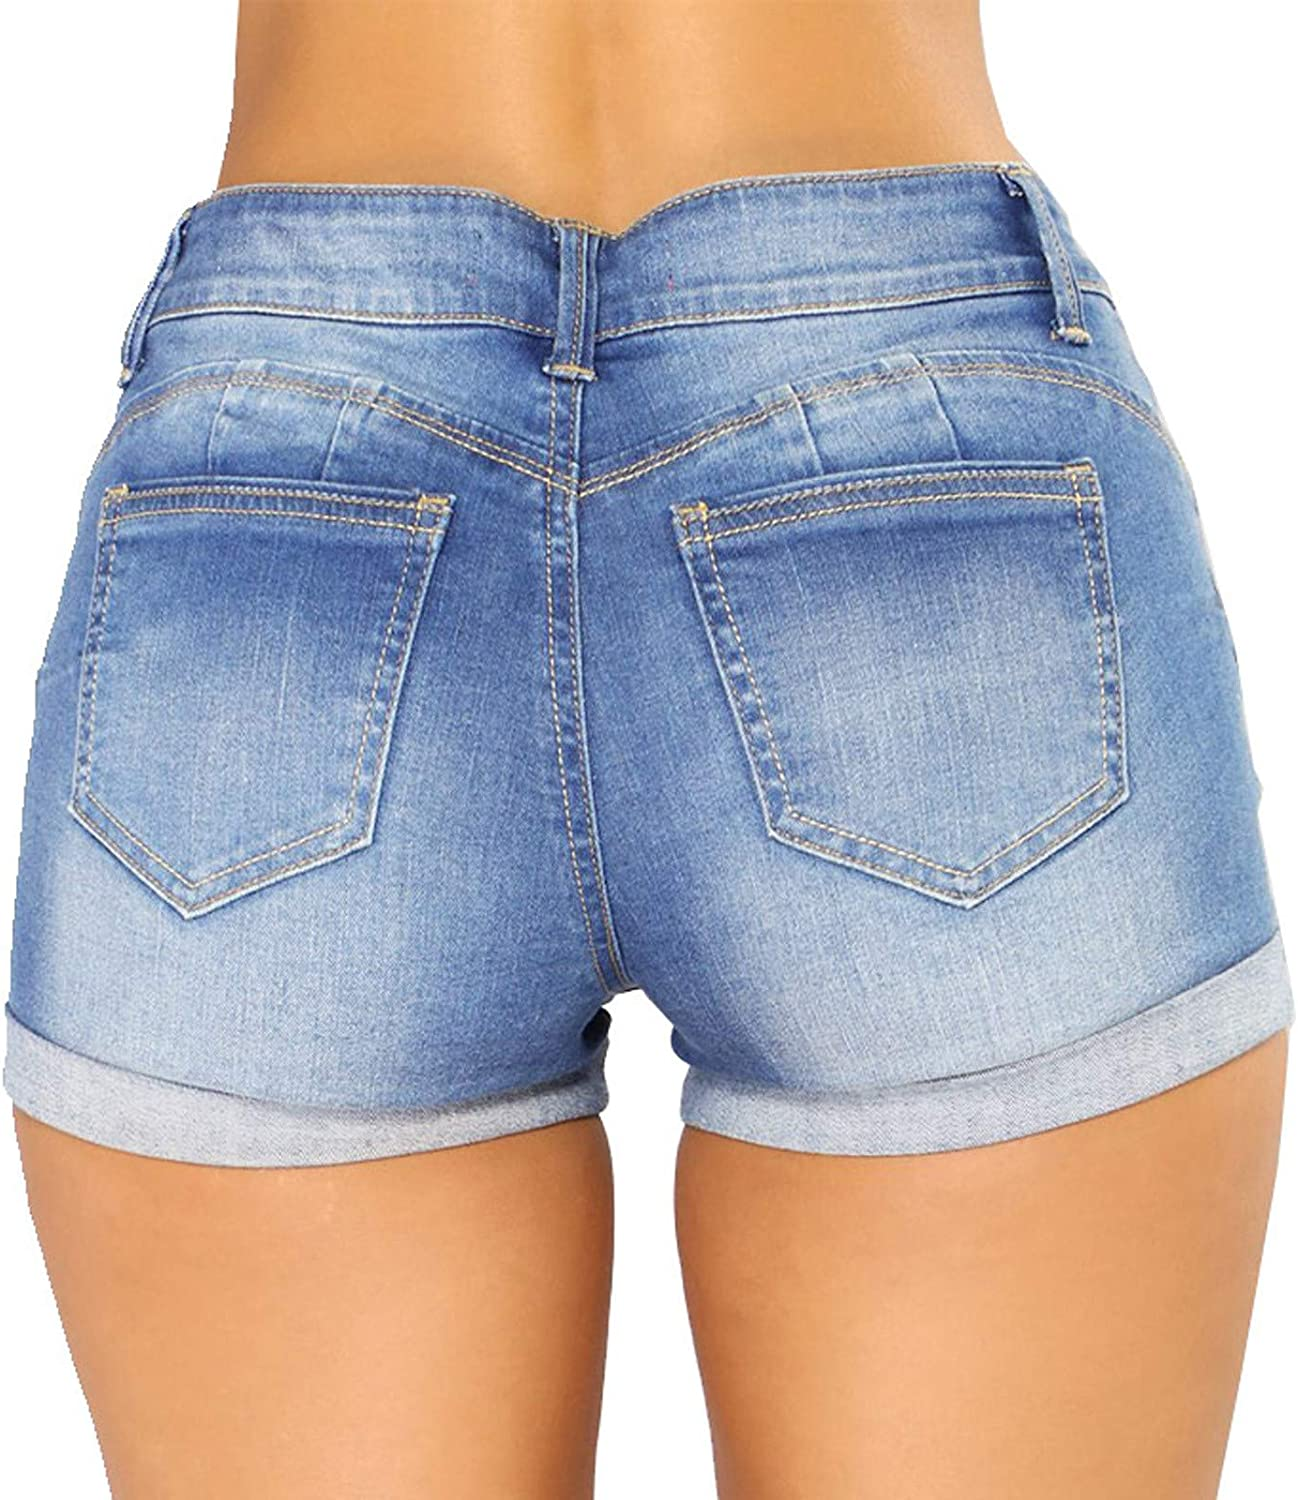 Pisexur Ripped Stretch Short Denim Jeans High Waist Buttons Casual Summer Hot Mom Jeans Outdoor Outing Short Denim Pants